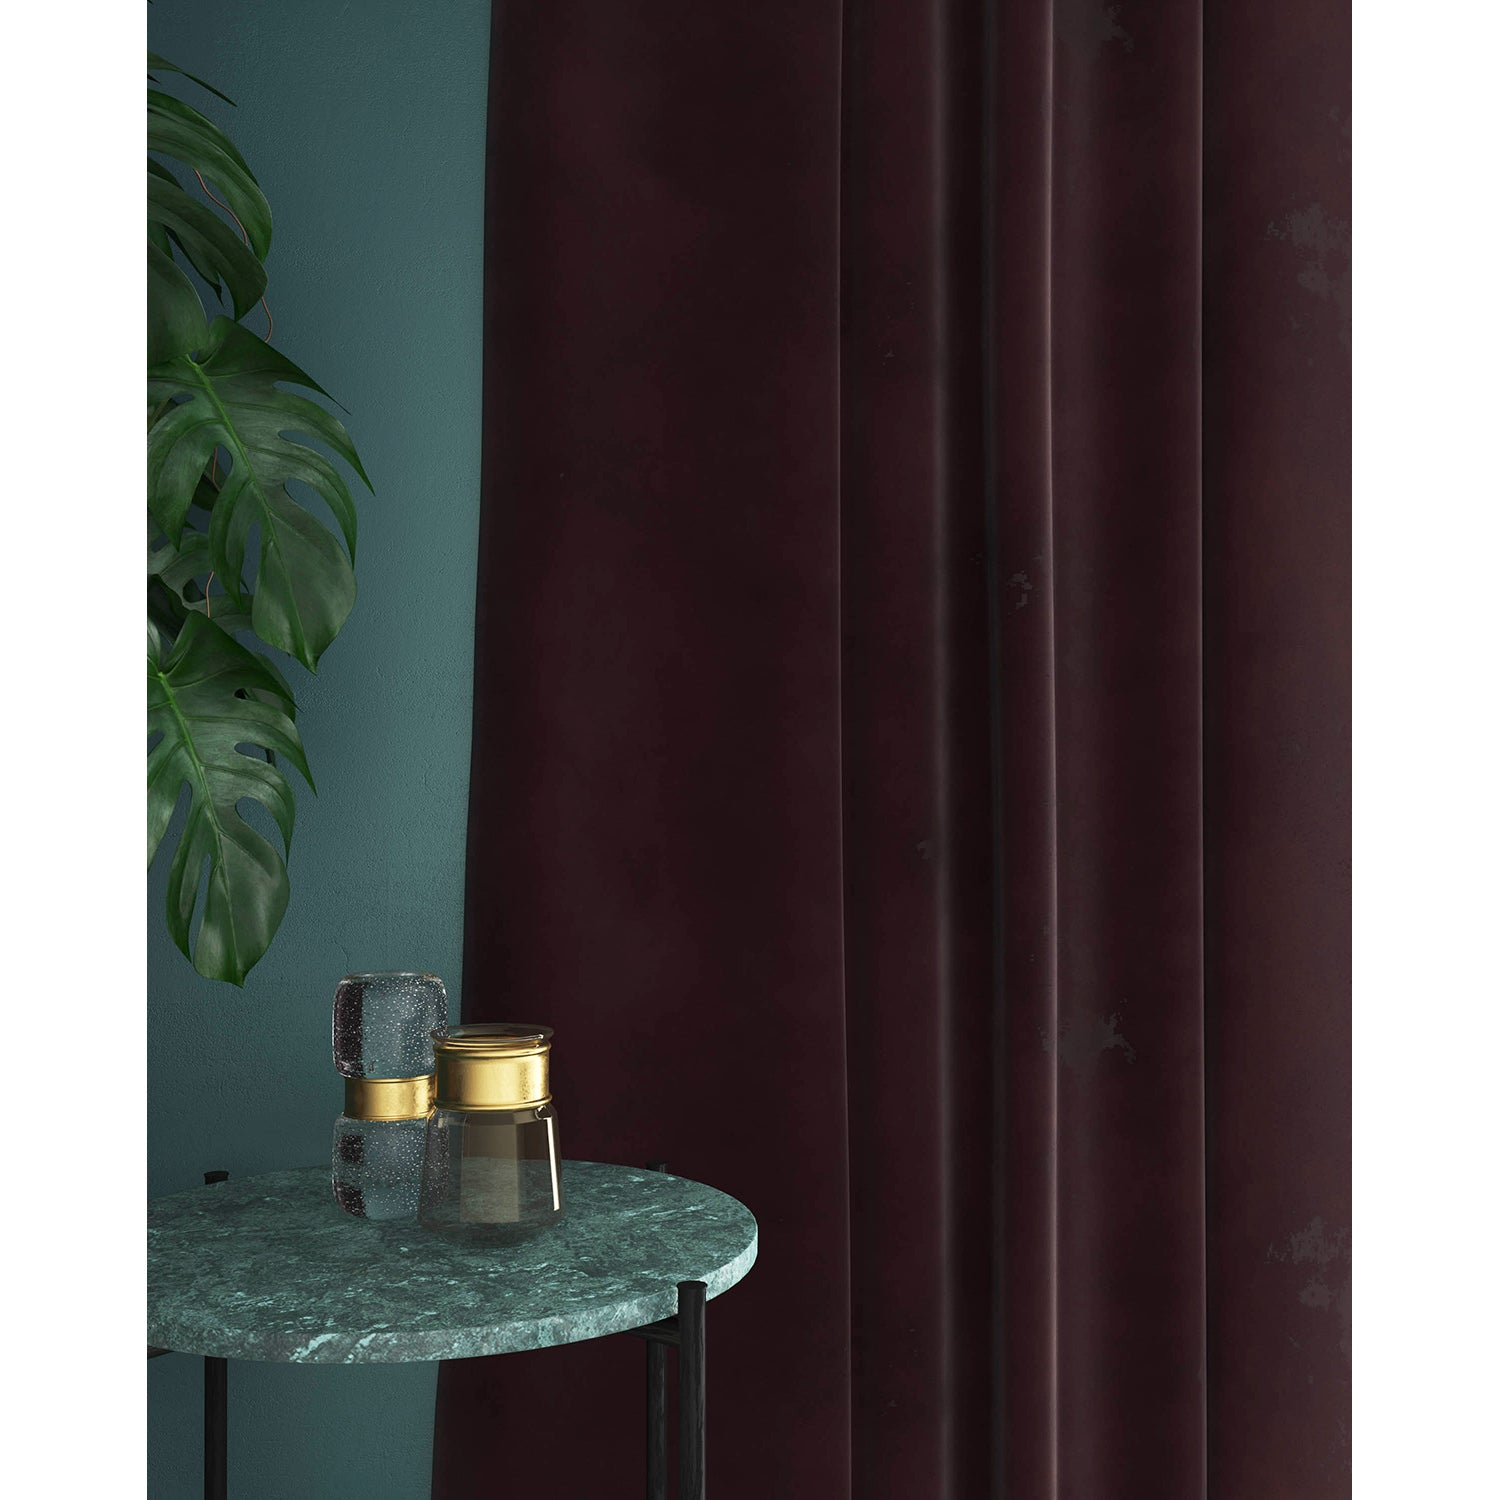 Curtains in a deep purple plain velvet fabric with a stain resistant finish